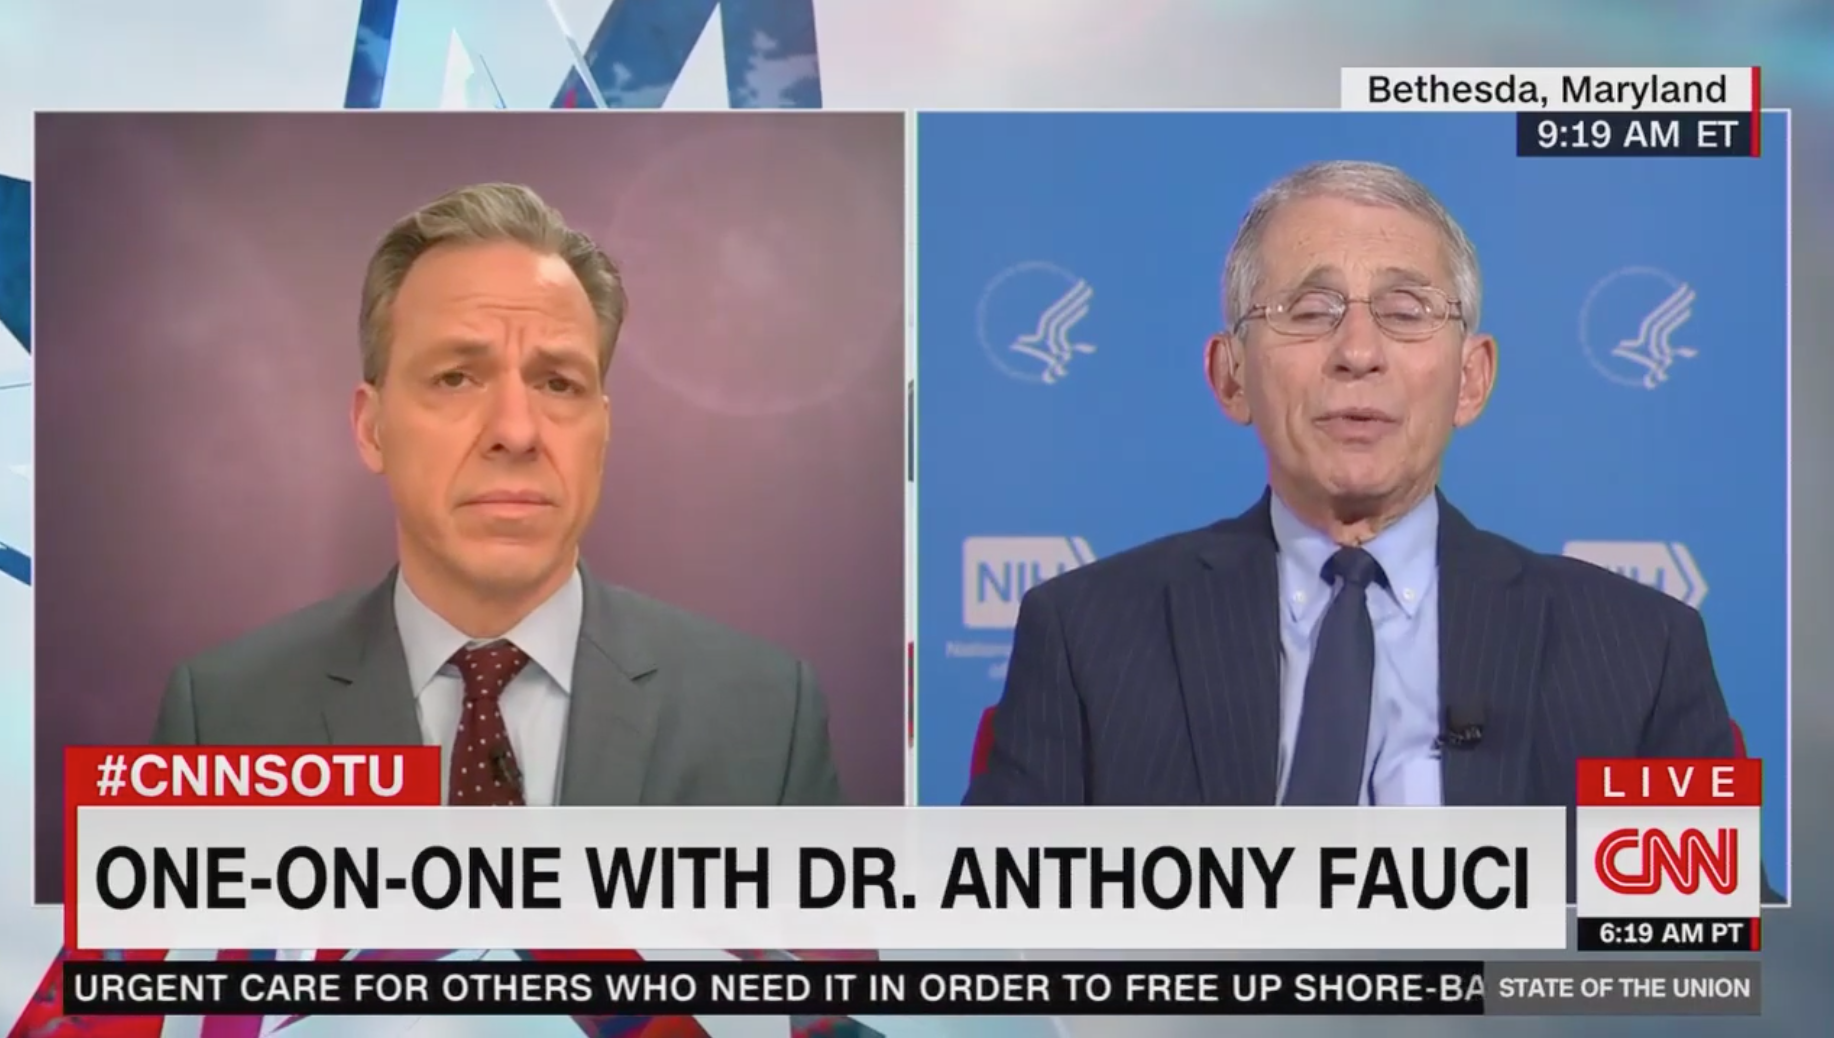 Fauci says 100,000 to 200,000 Americans could die from coronavirus